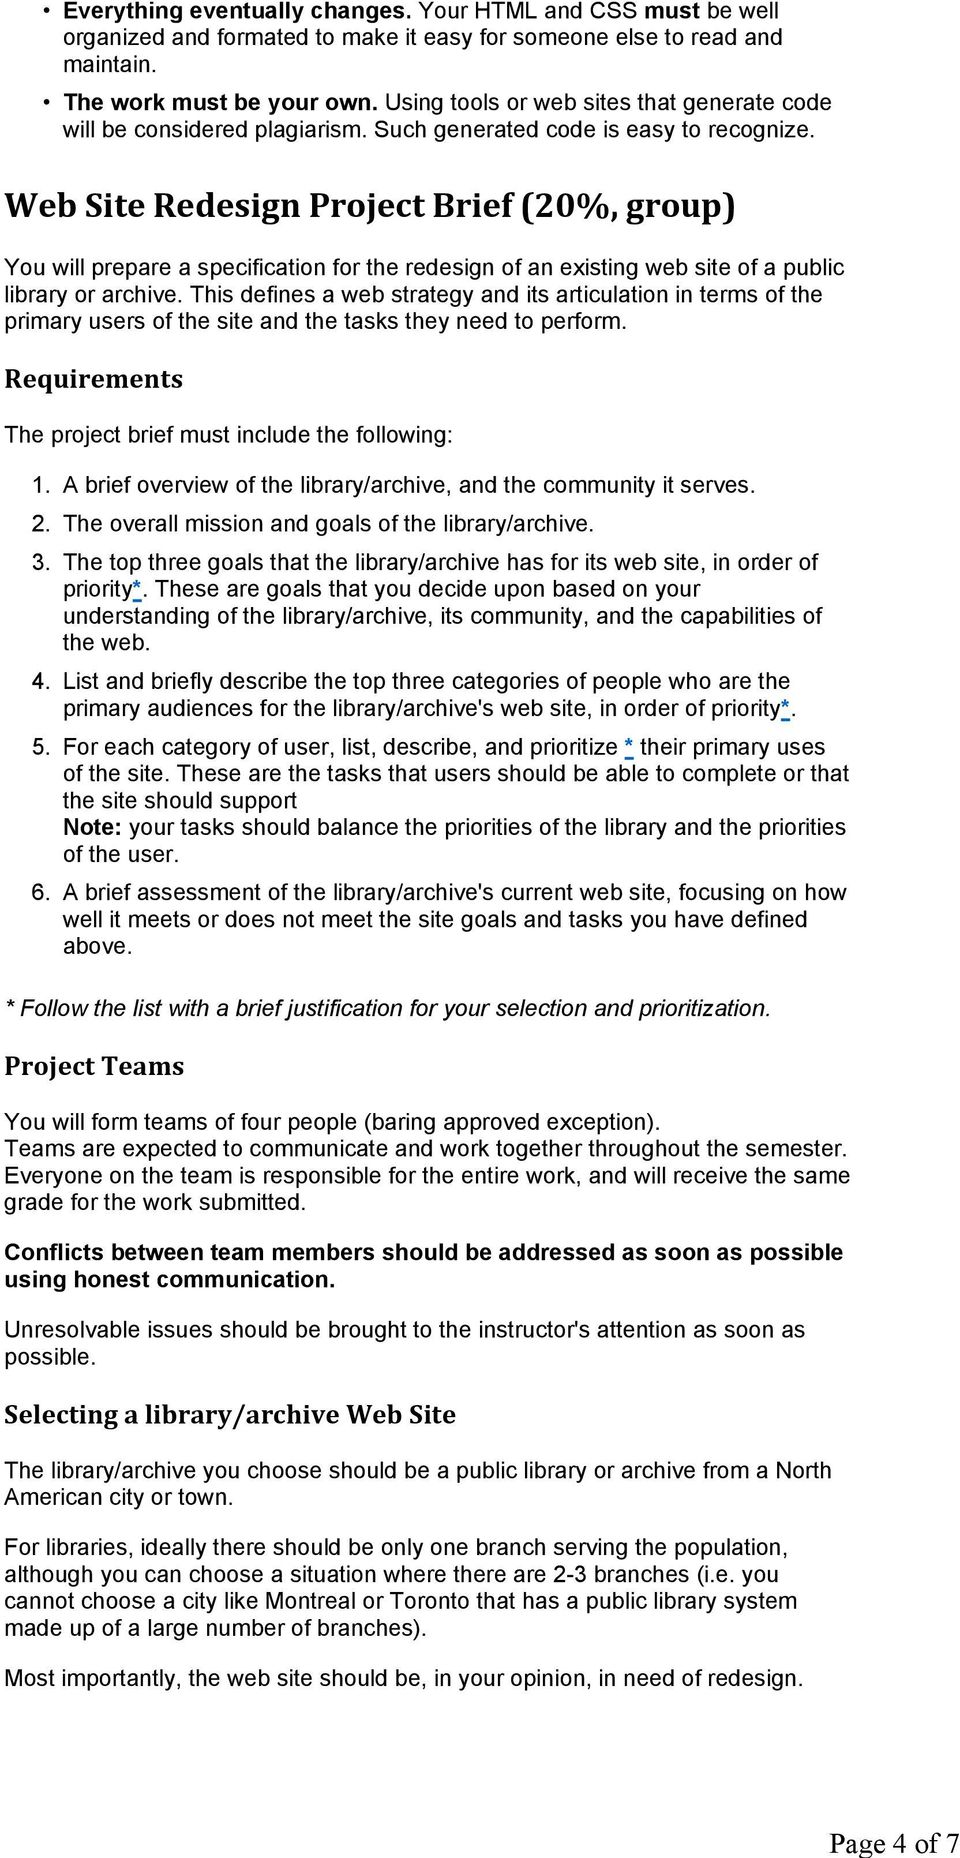 Web Site Redesign Project Brief (20%, group) You will prepare a specification for the redesign of an existing web site of a public library or archive.